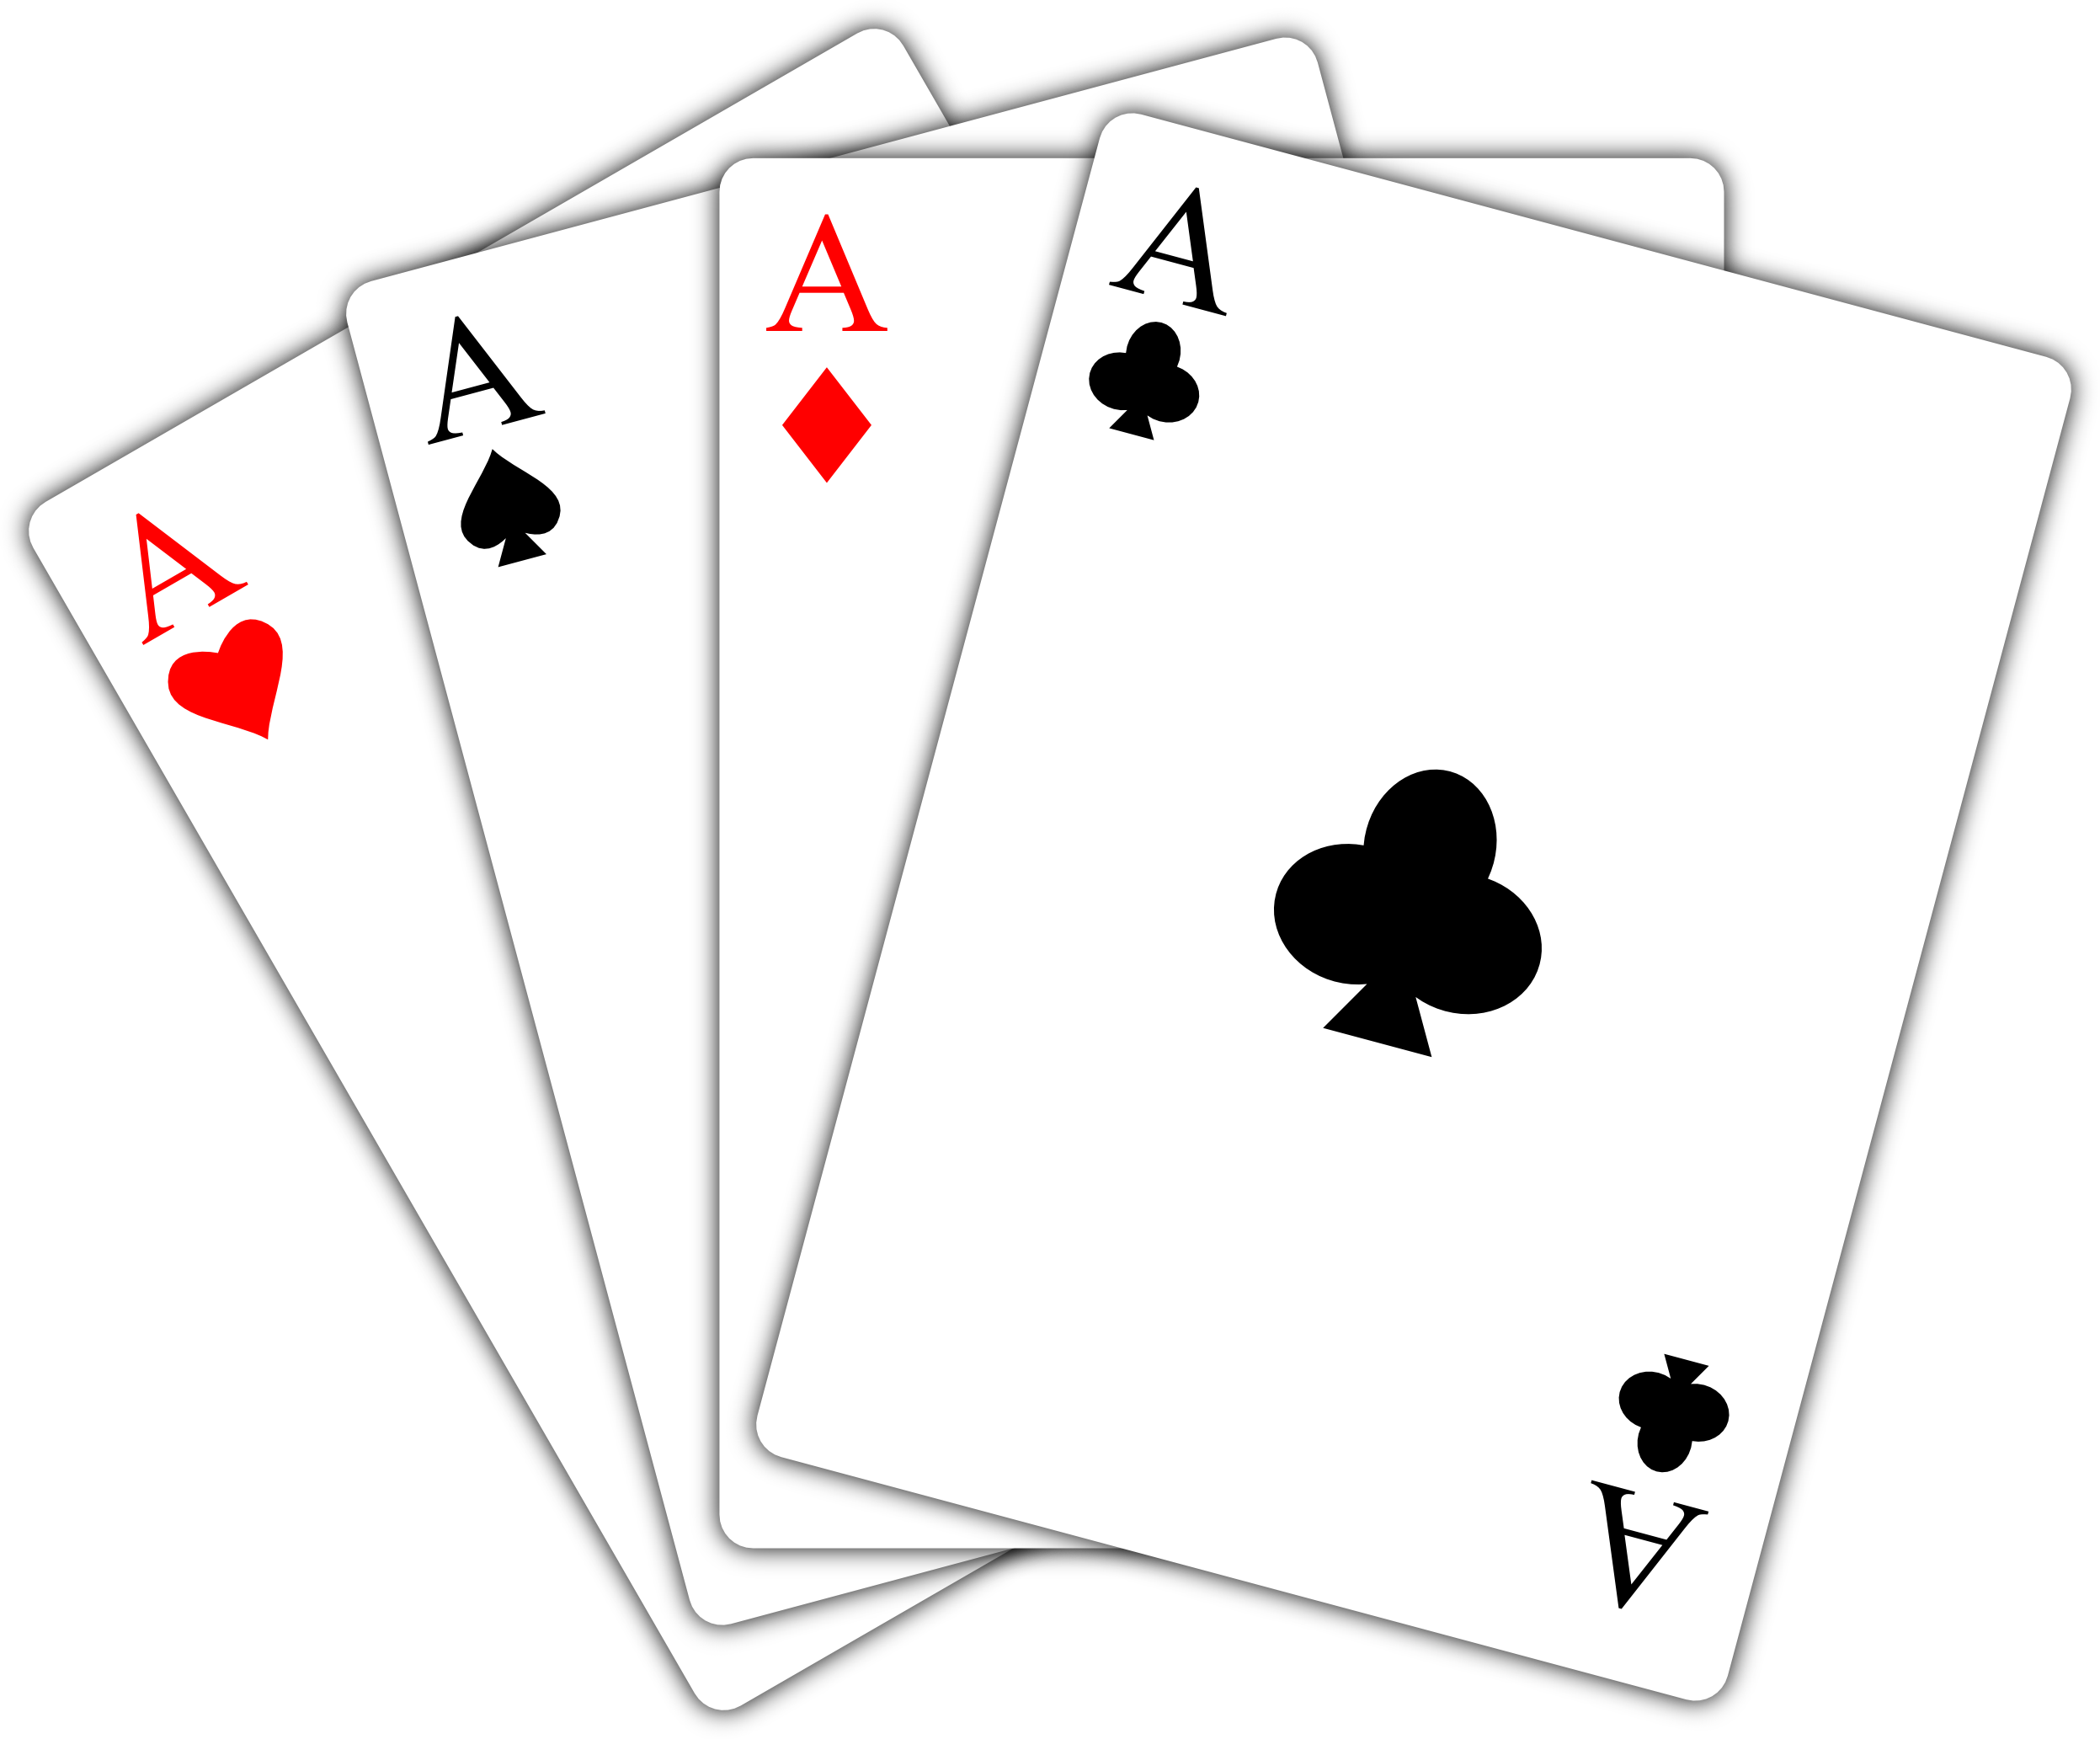 Aces Playing Cards Black And White Clipart.